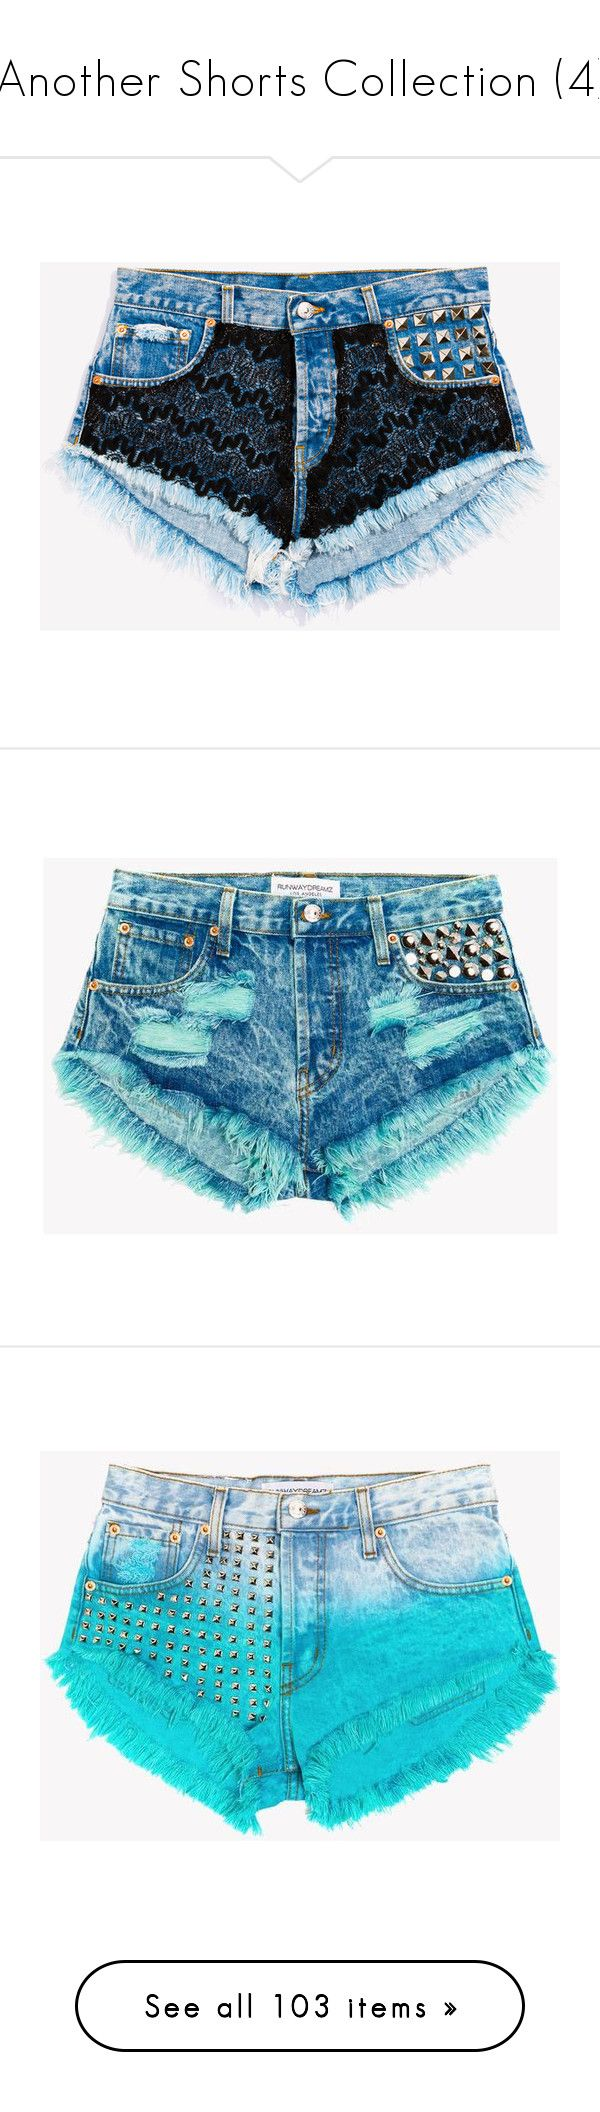 """""""Another Shorts Collection (4)"""" by neverland-is-just-a-dream-away ❤ liked on Polyvore featuring shorts, bottoms, cut off shorts, ripped jean shorts, destroyed denim shorts, frayed denim shorts, cutoff shorts, pants, runwaydreamz shorts and runwaydreamz"""